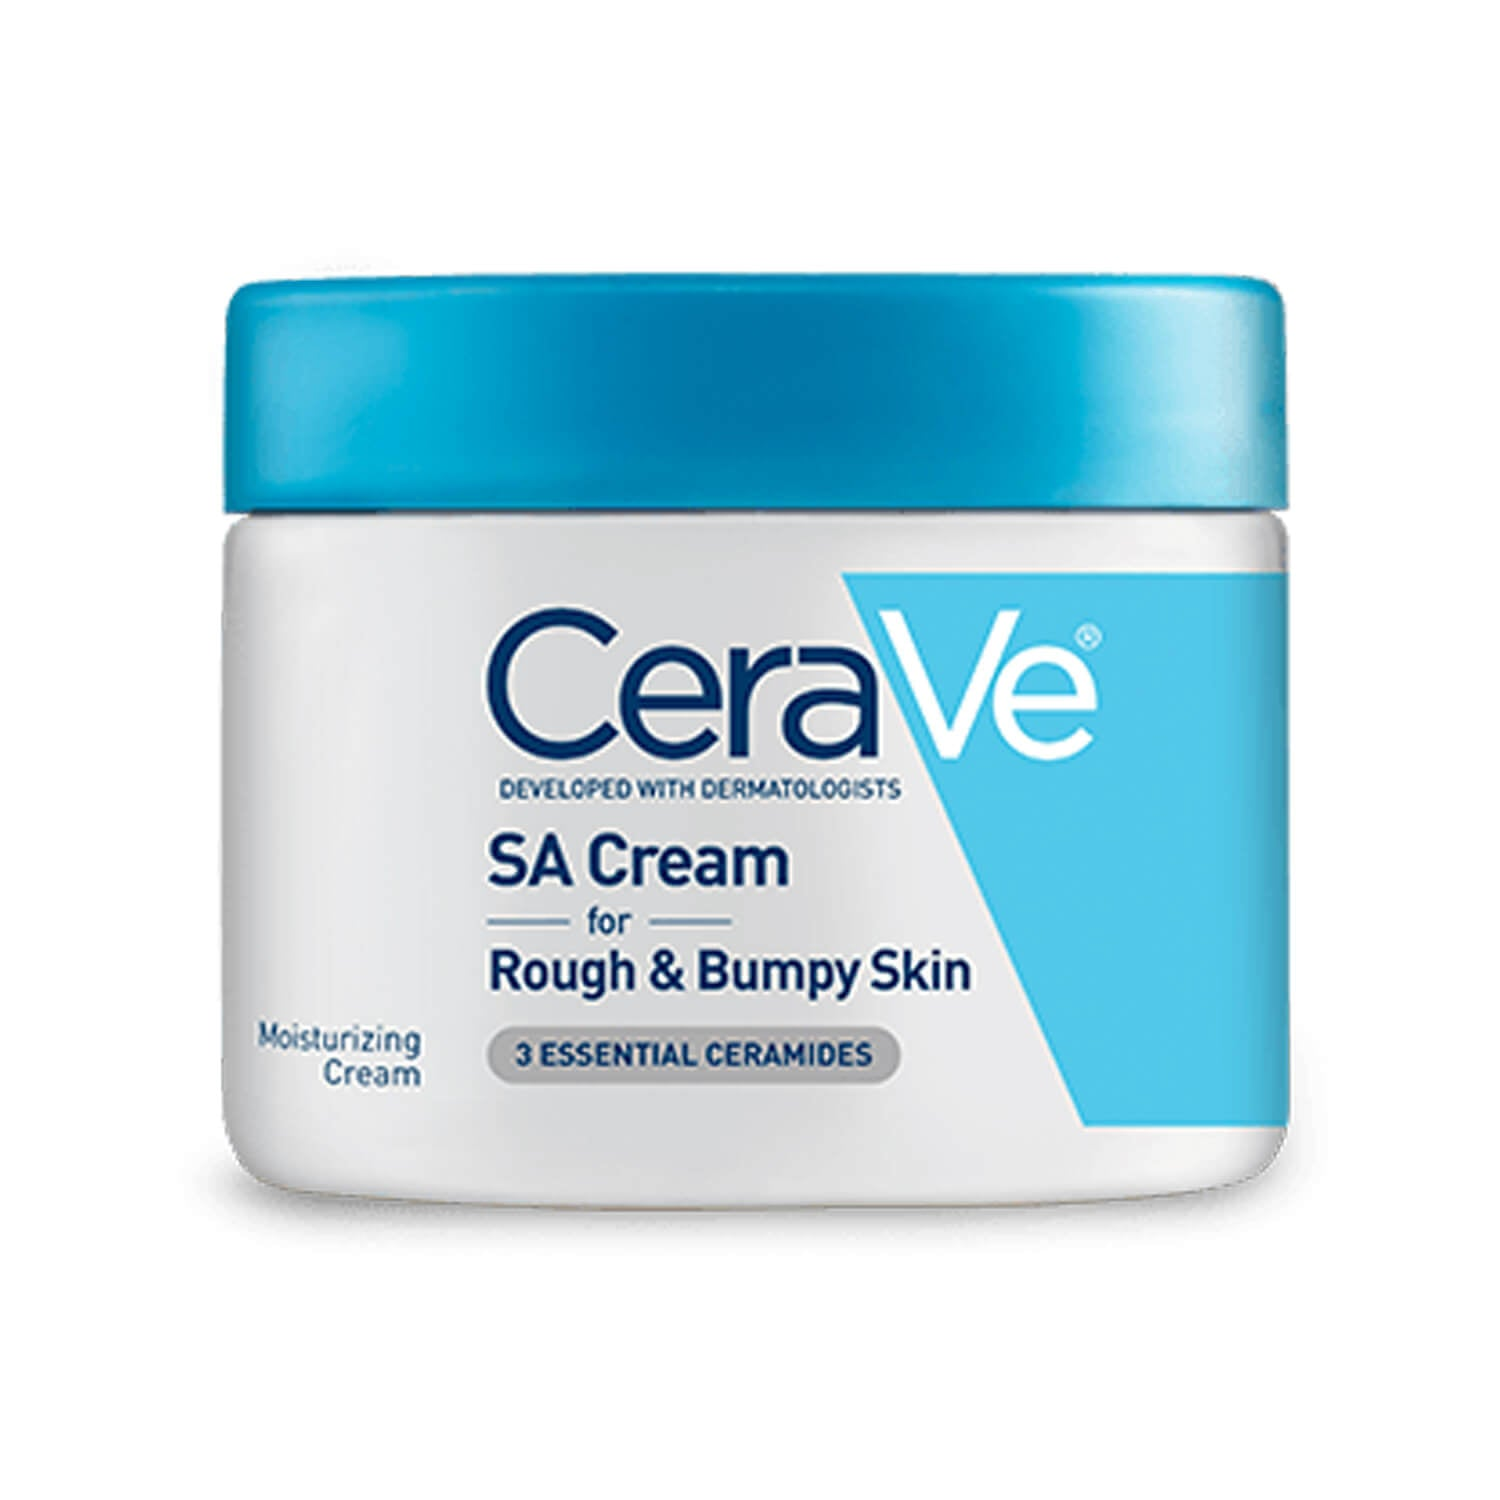 CeraVe SA Cream for Rough & Bumpy Skin 340g